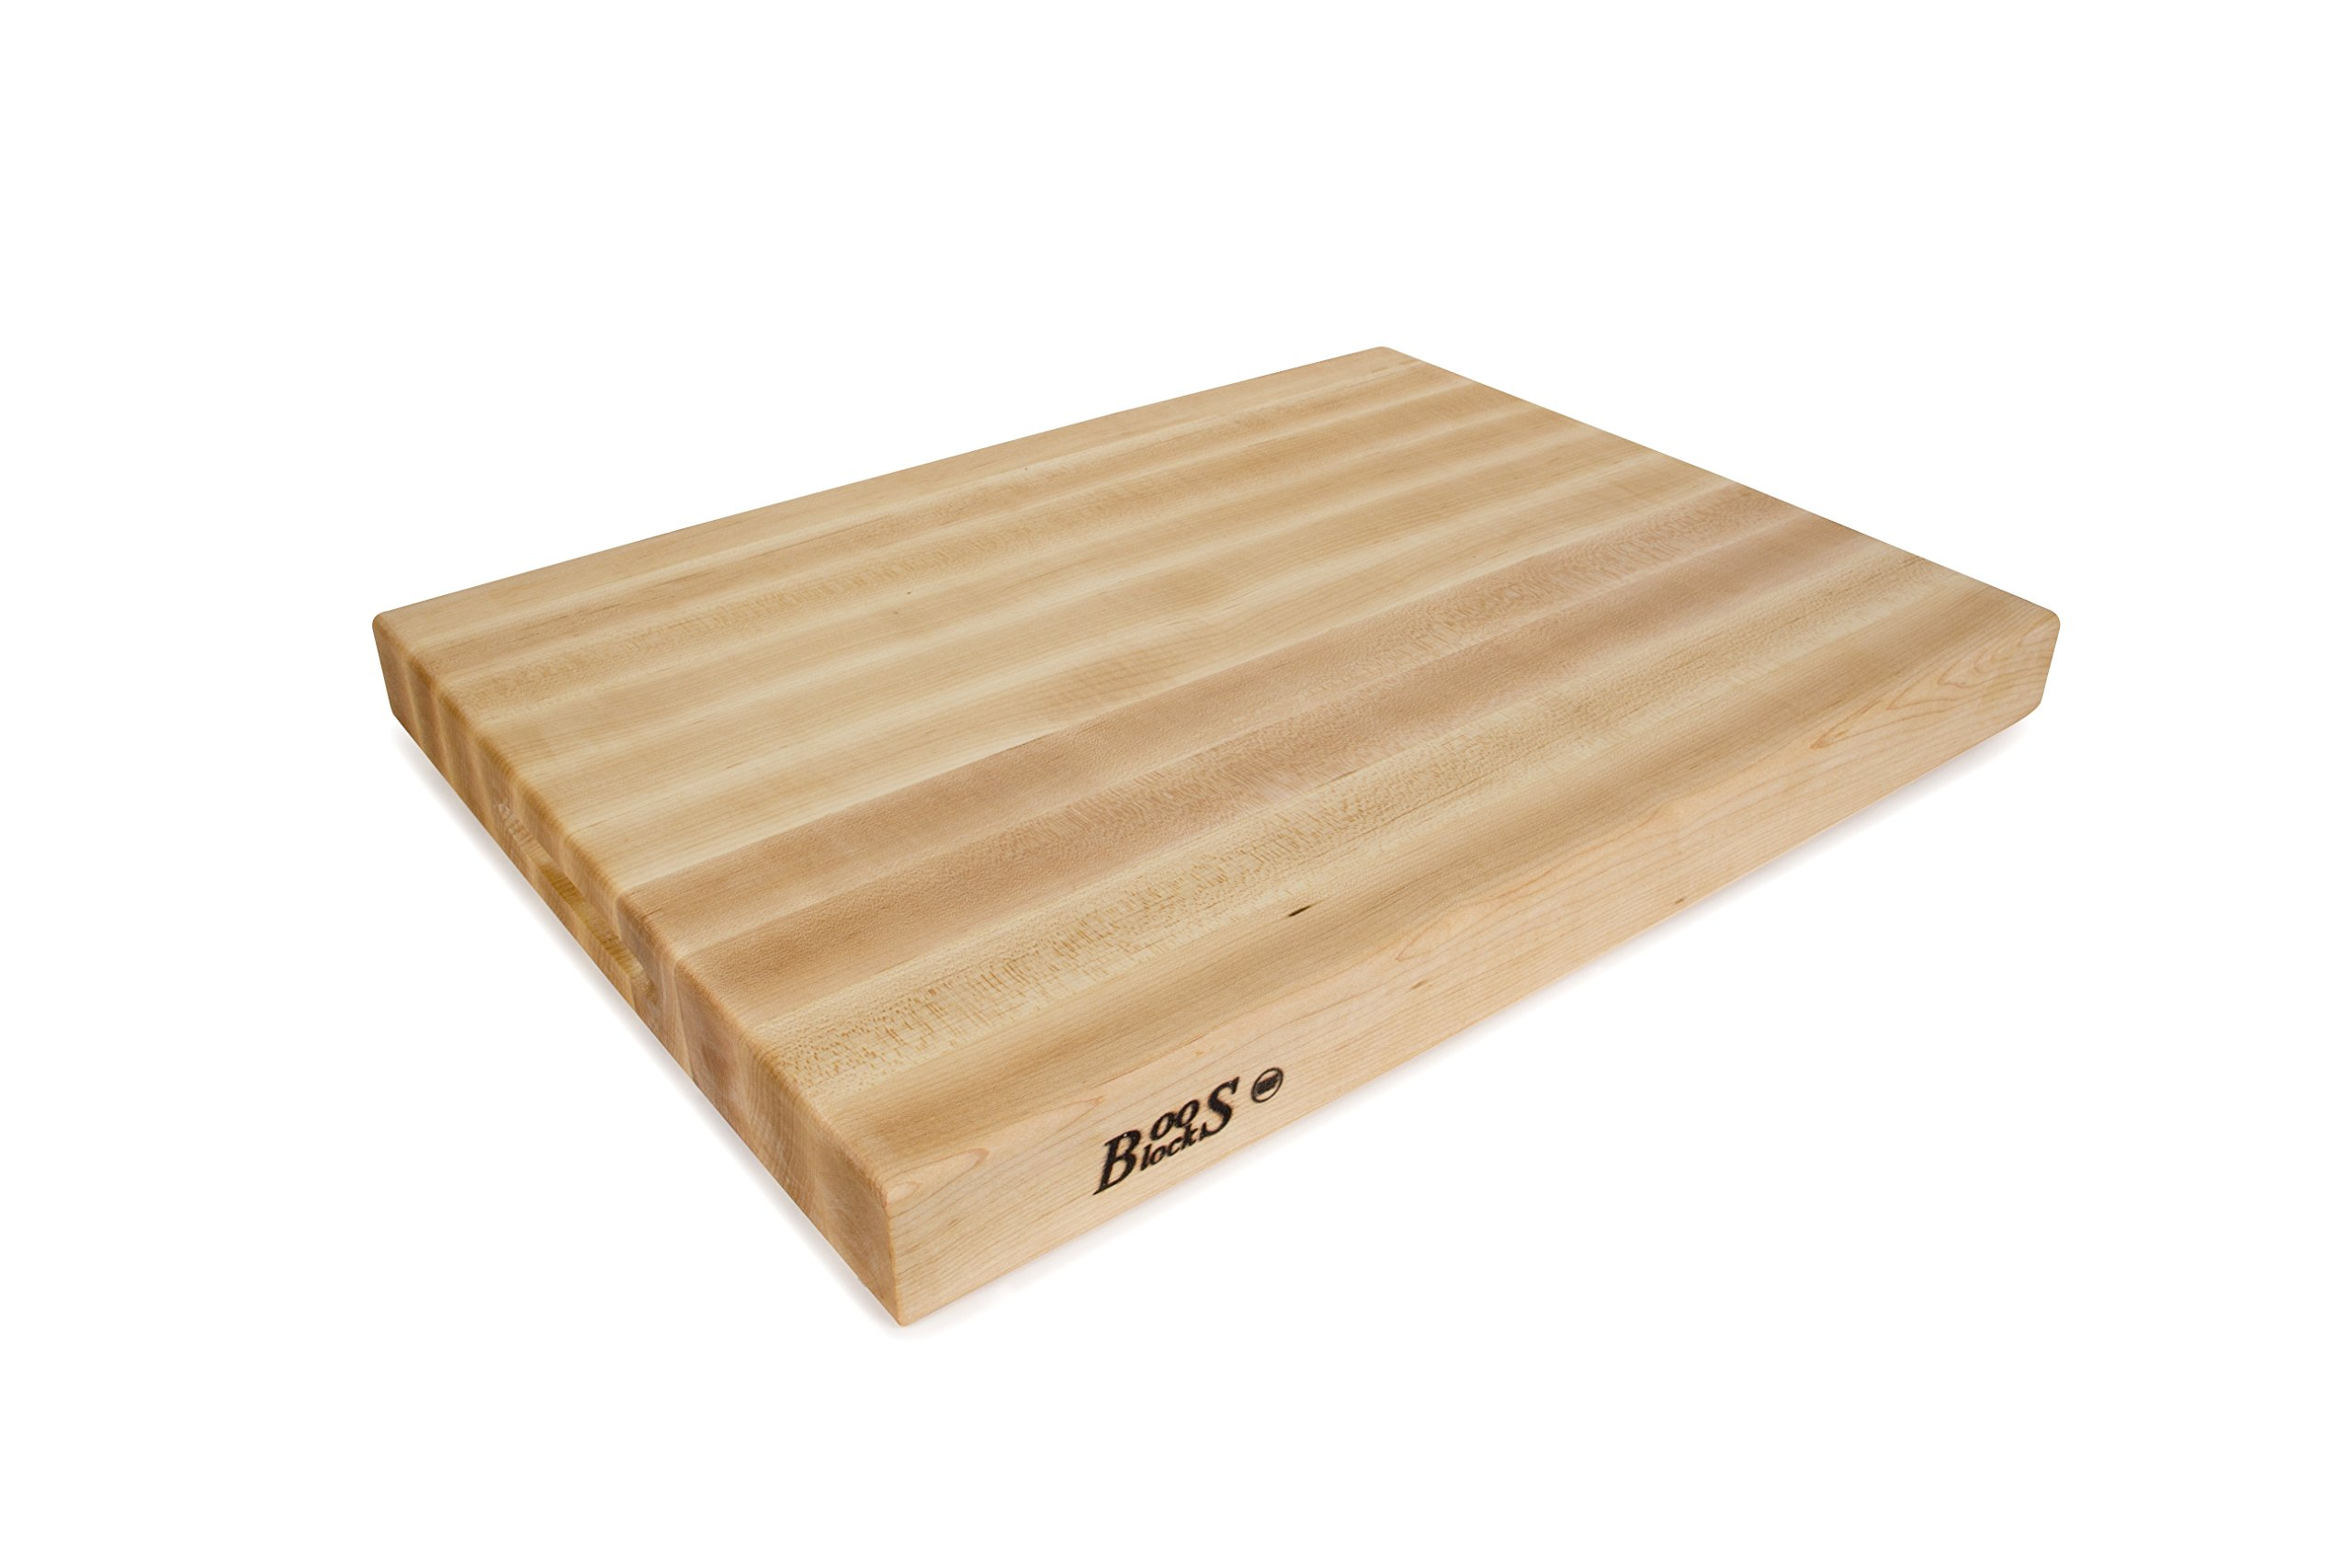 john-boos-ra03-maple wood-edge-best-wood-cutting-boards-reviews